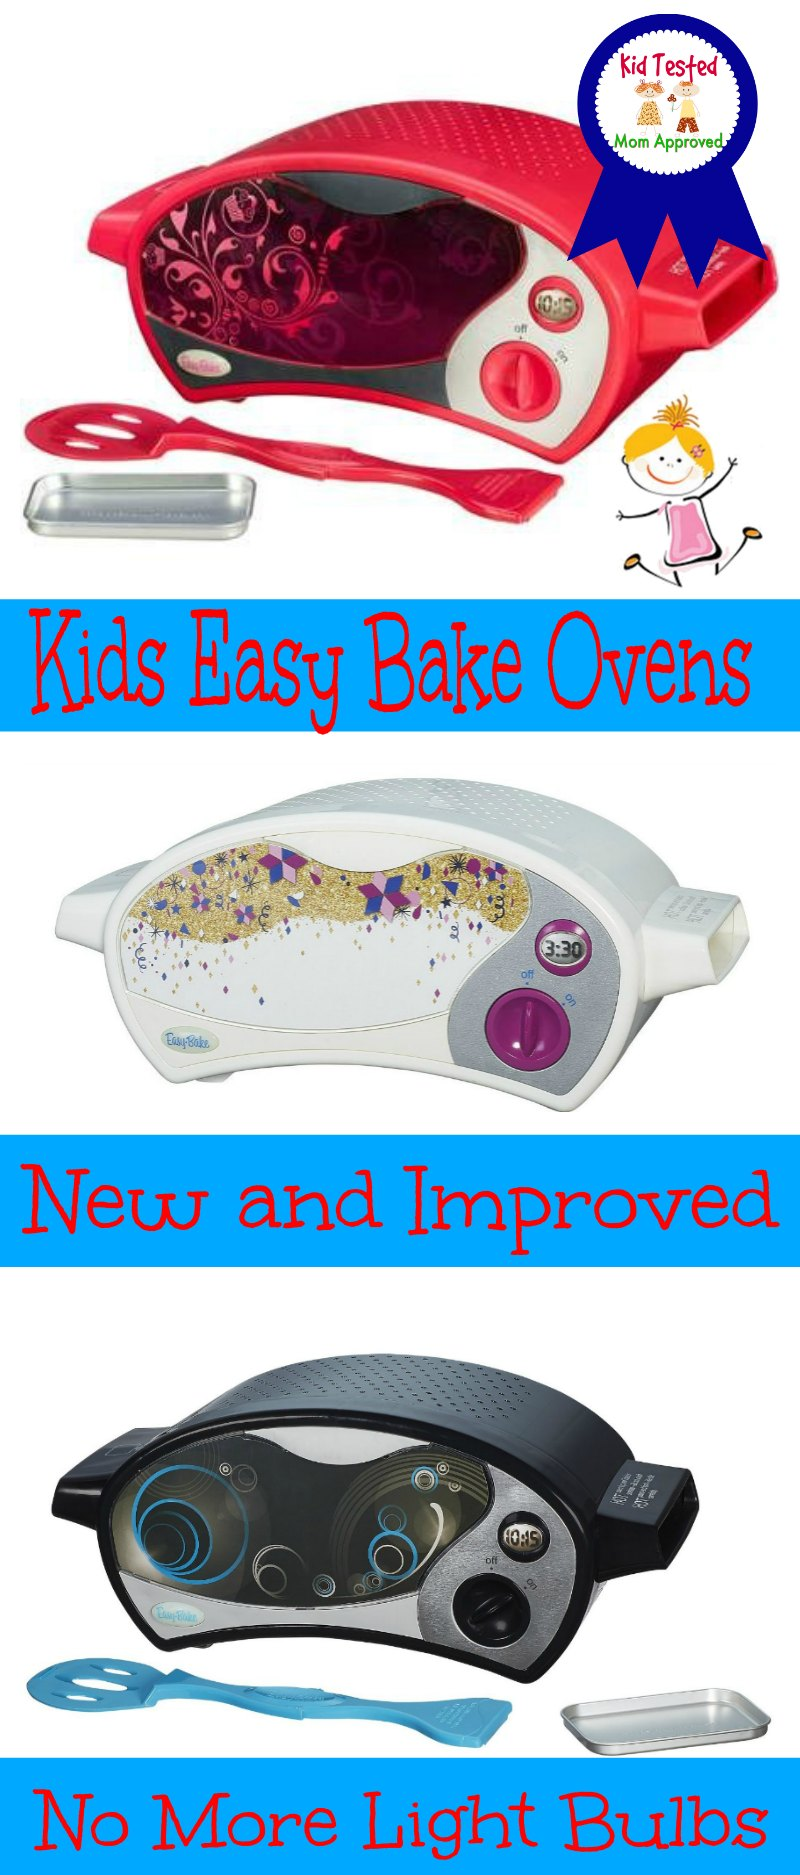 Kids Easy Bake Ovens and Accessories  New  Improved